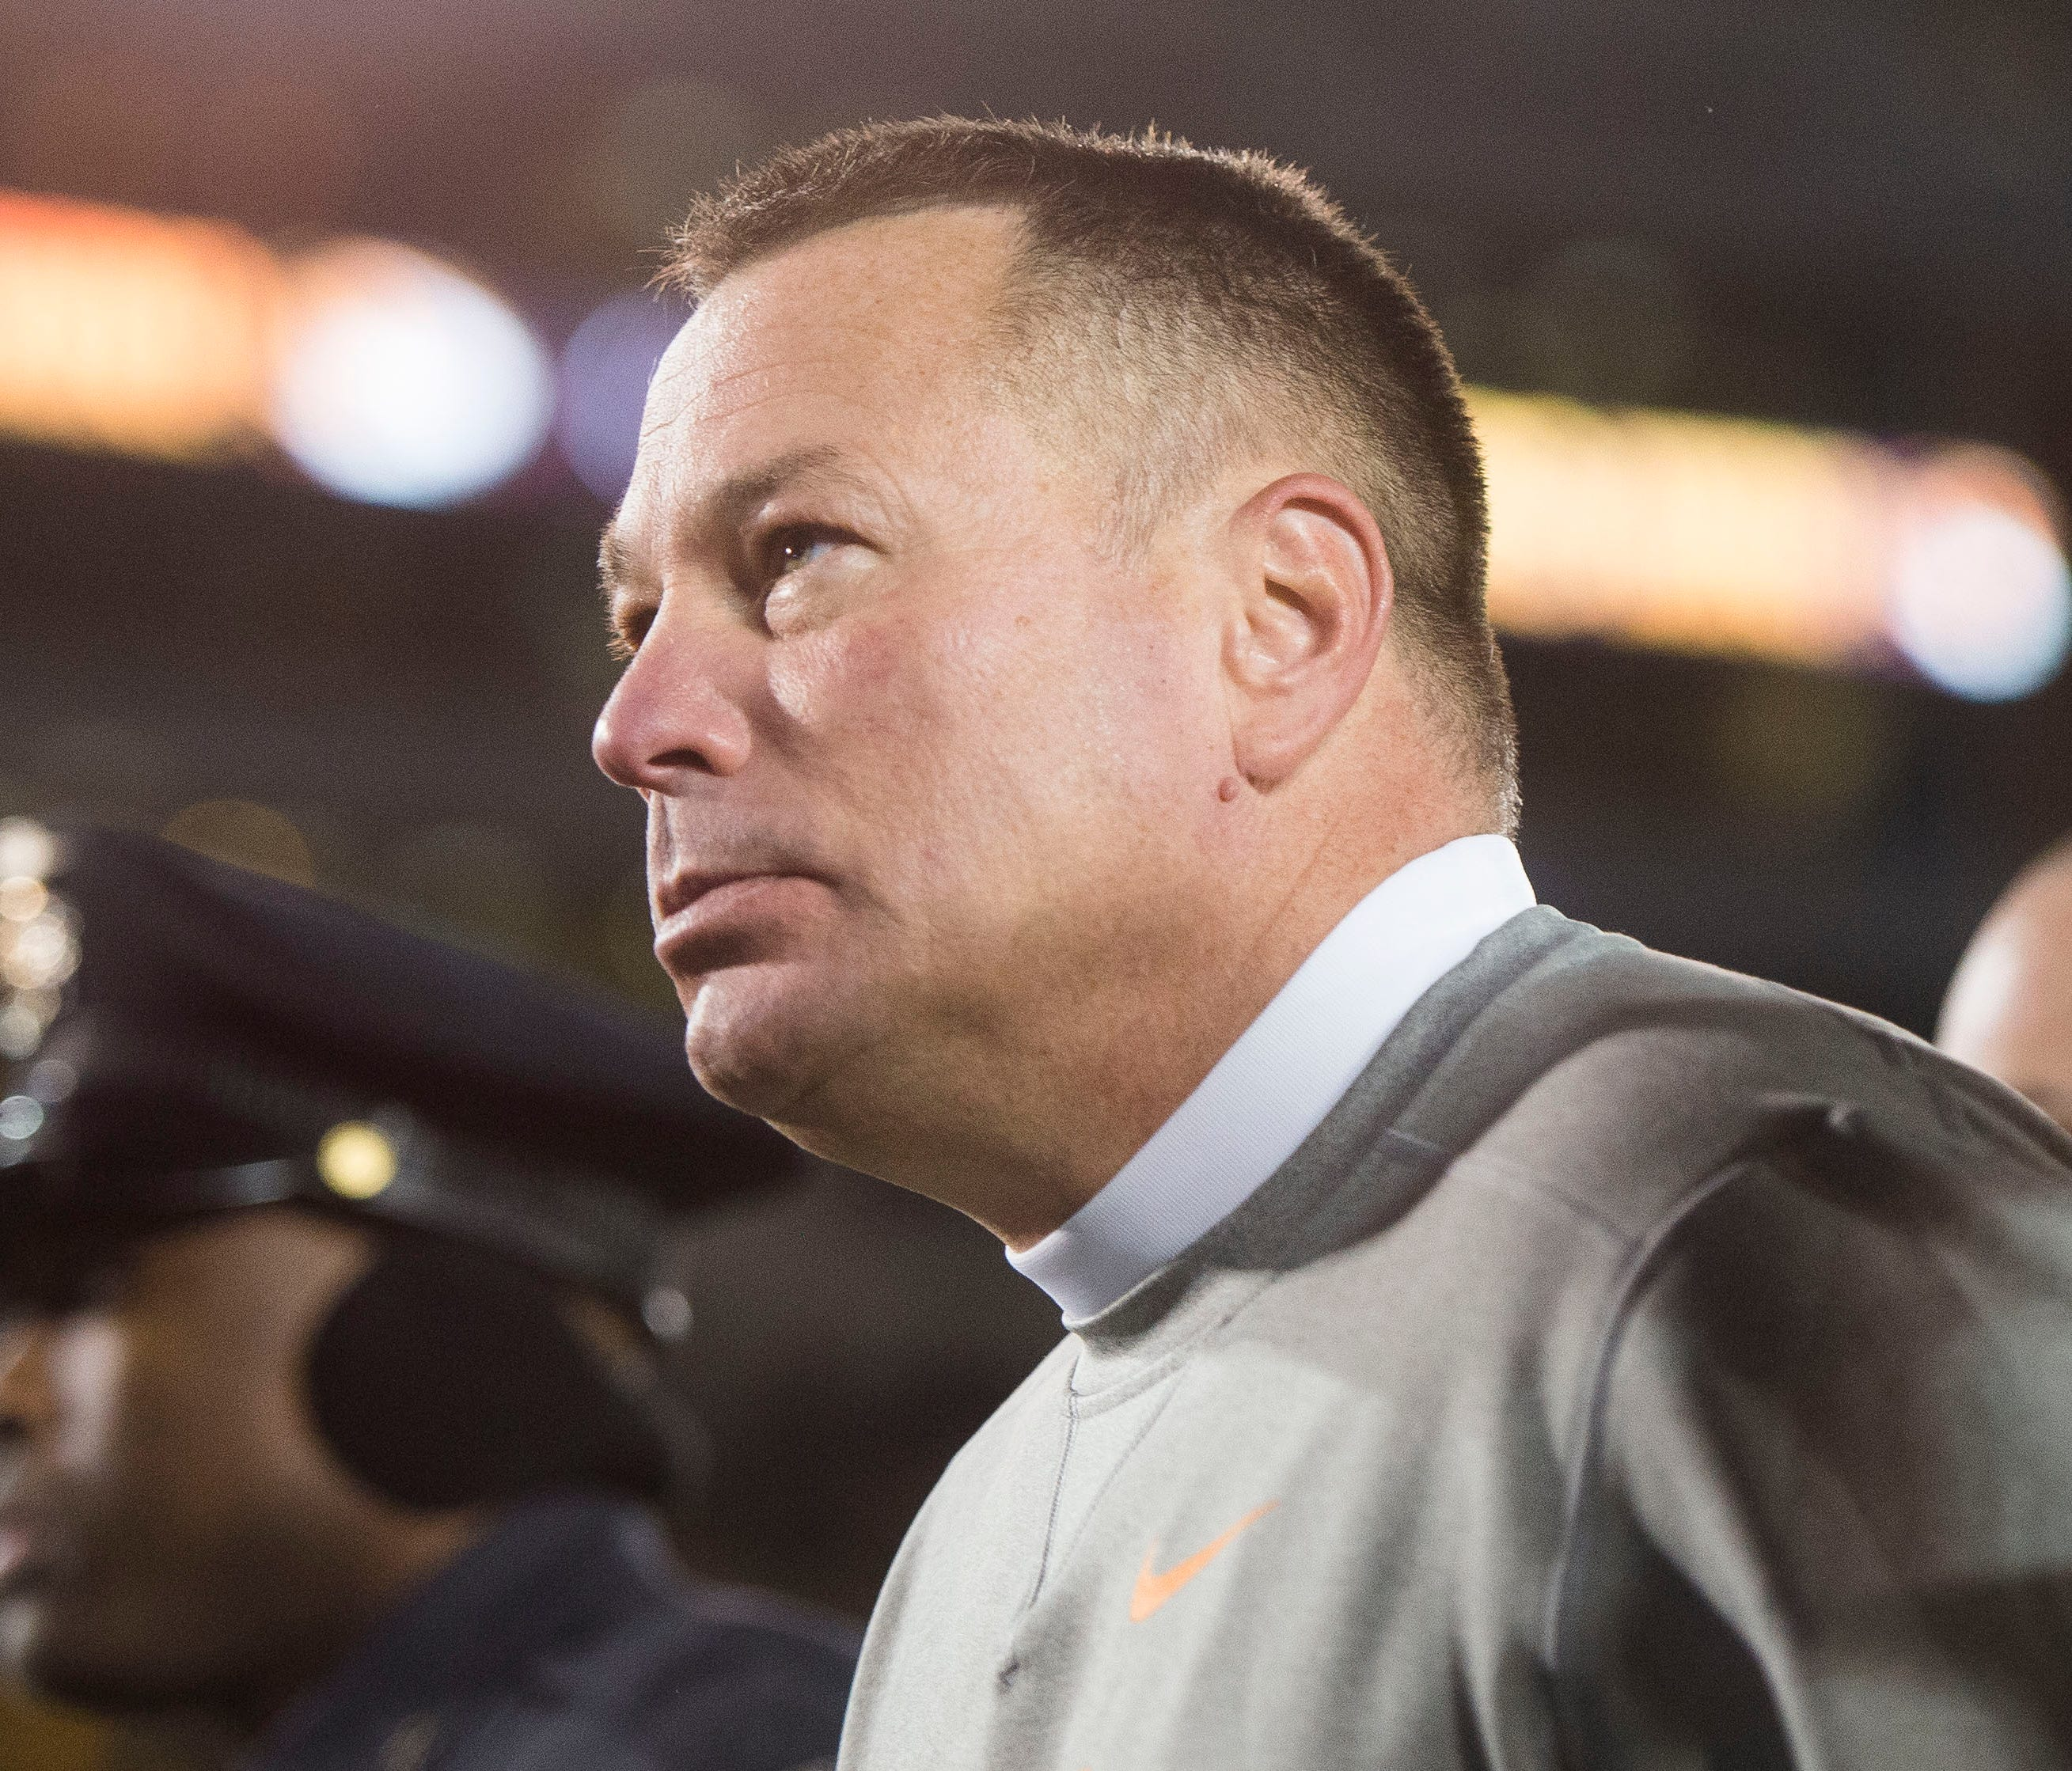 Tennessee Head Coach Butch Jones walks off the field after a game between Tennessee and Missouri at Faurot Field in Columbia, Missouri, on Saturday November 11, 2017. Missouri defeated Tennessee 50 to 17.